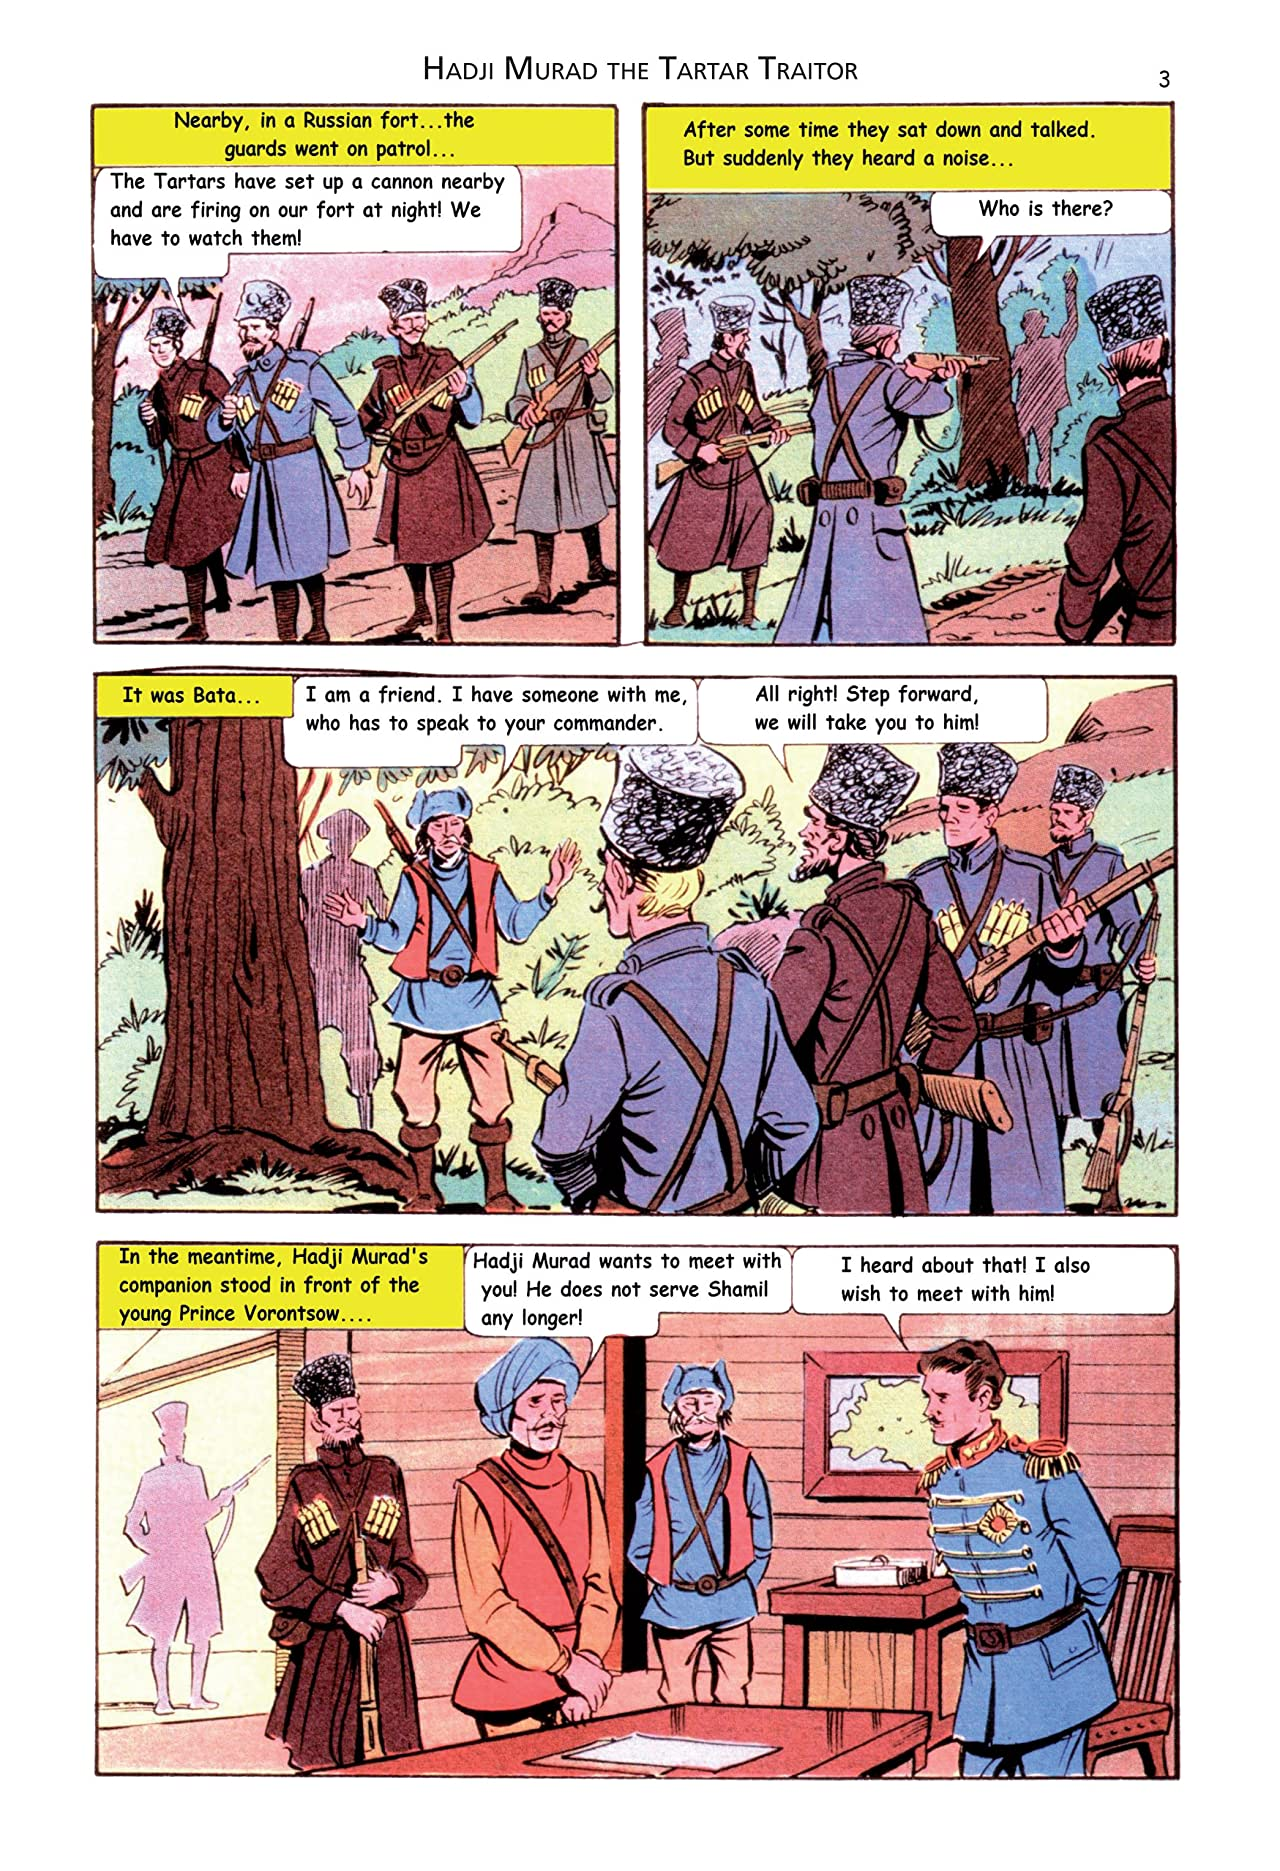 Classics Illustrated JES #16: Hadji Murad the Tartar Traitor